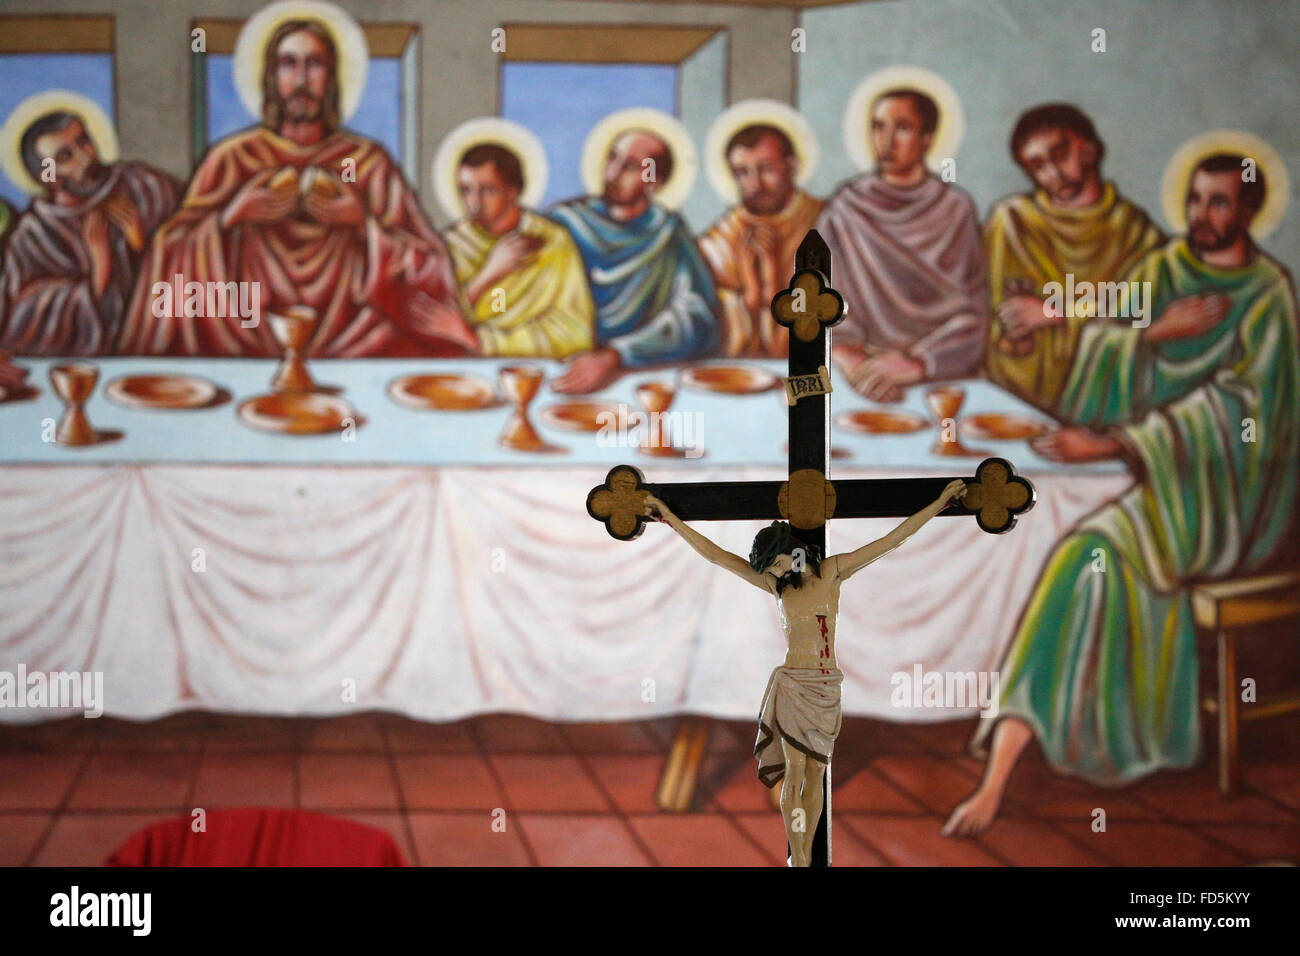 Crucifix and the depiction of the last supper. - Stock Image